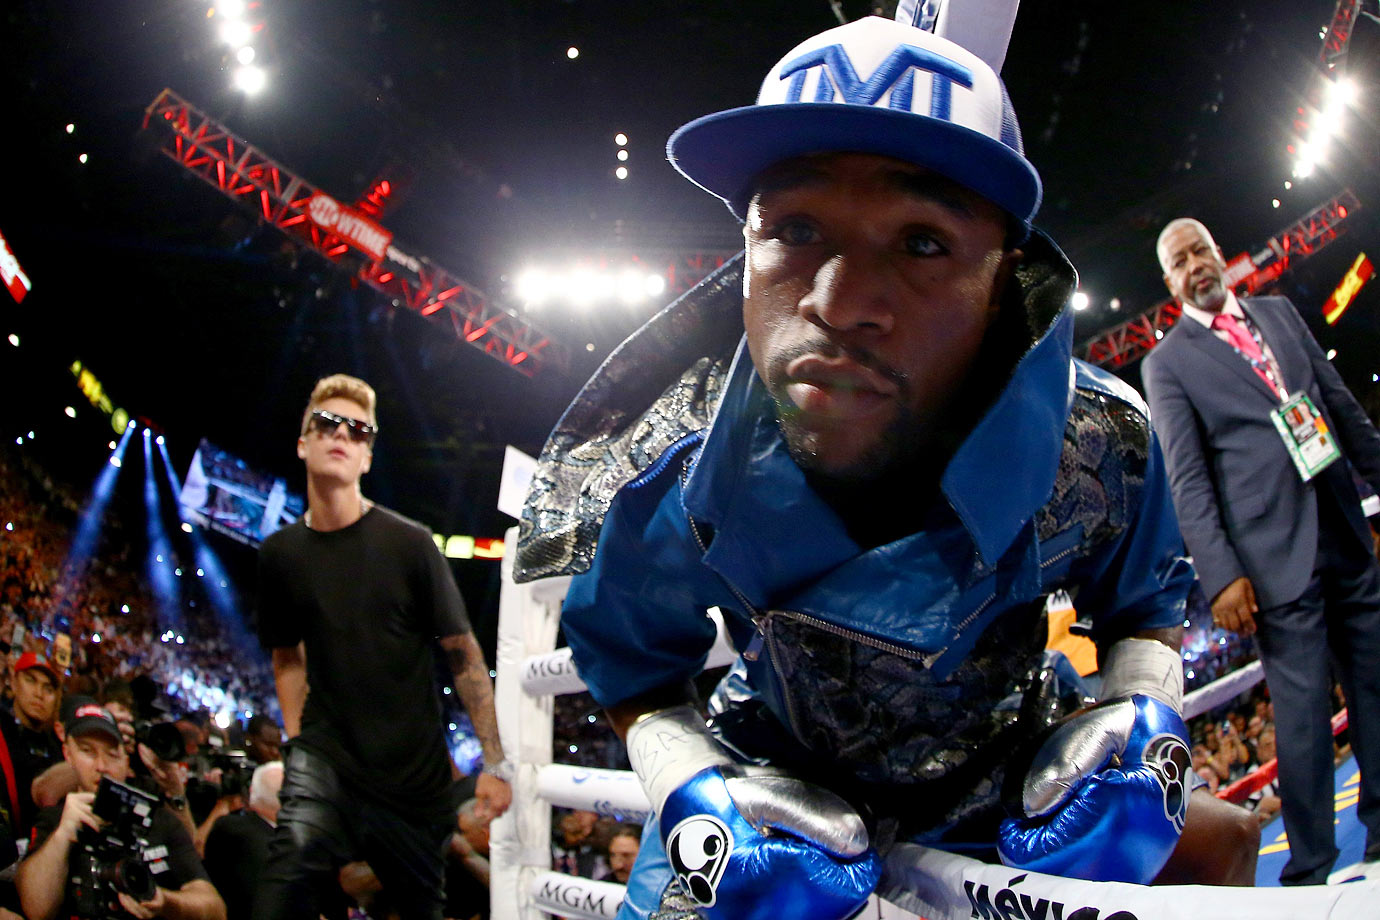 Floyd Mayweather Jr. enters the ring alongside Justin Bieber for his WBC/WBA 154-pound title fight against Saul 'El Canelo' Alvarez on Sept. 14, 2013 at the MGM Grand Garden Arena in Las Vegas.